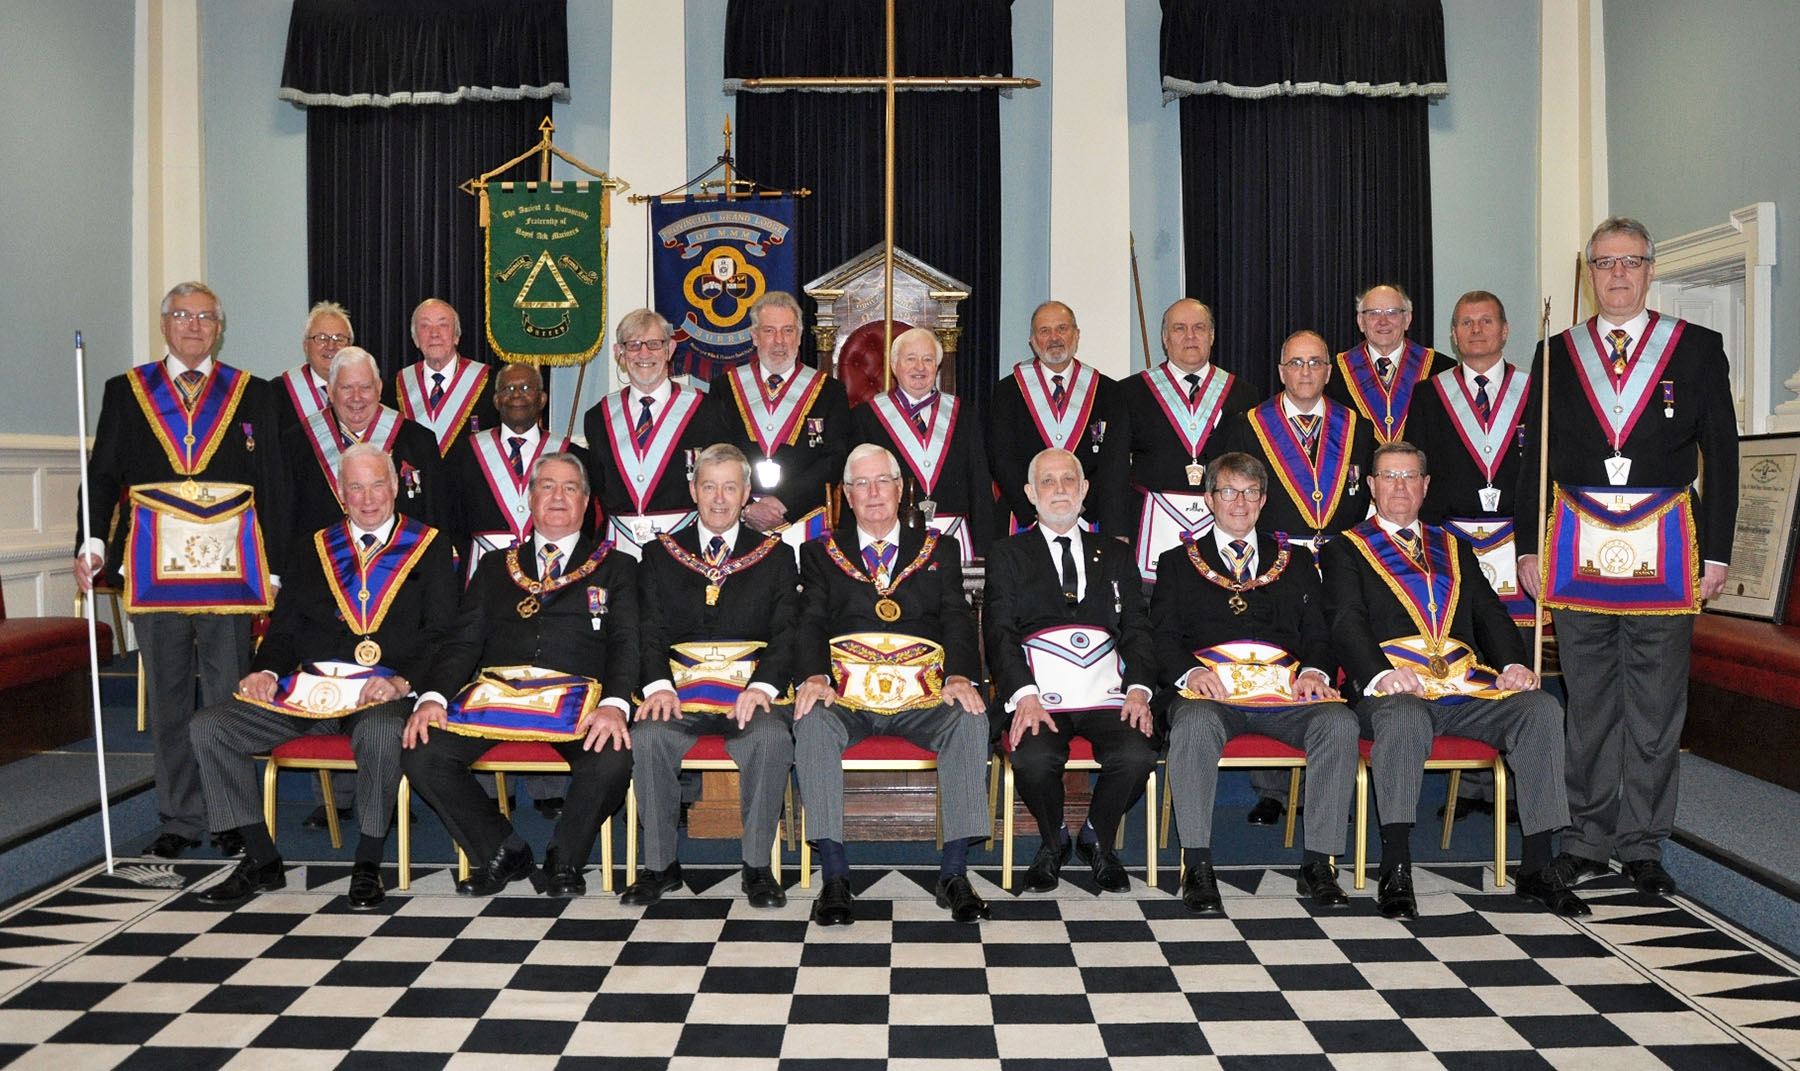 The Provincial Grand Master visits Pride of Surrey Lodge